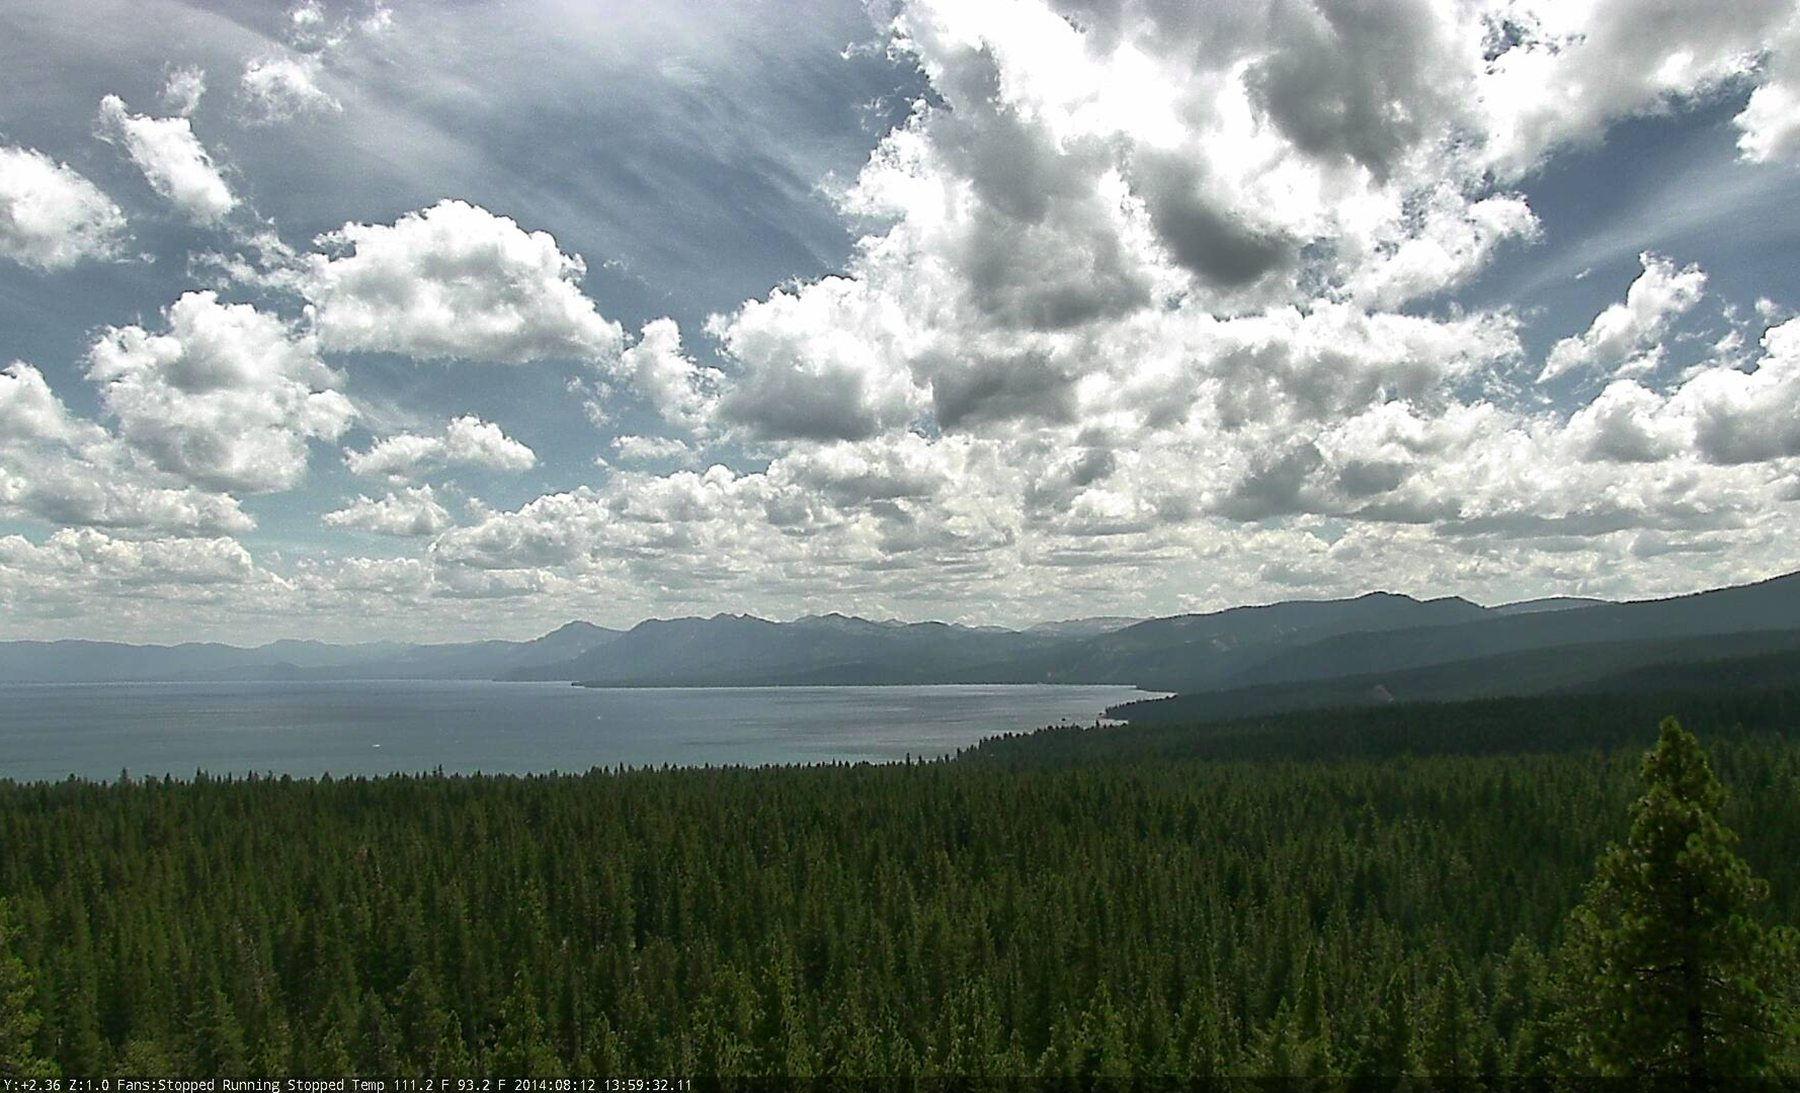 View from Lake Tahoe north shore fire cam.